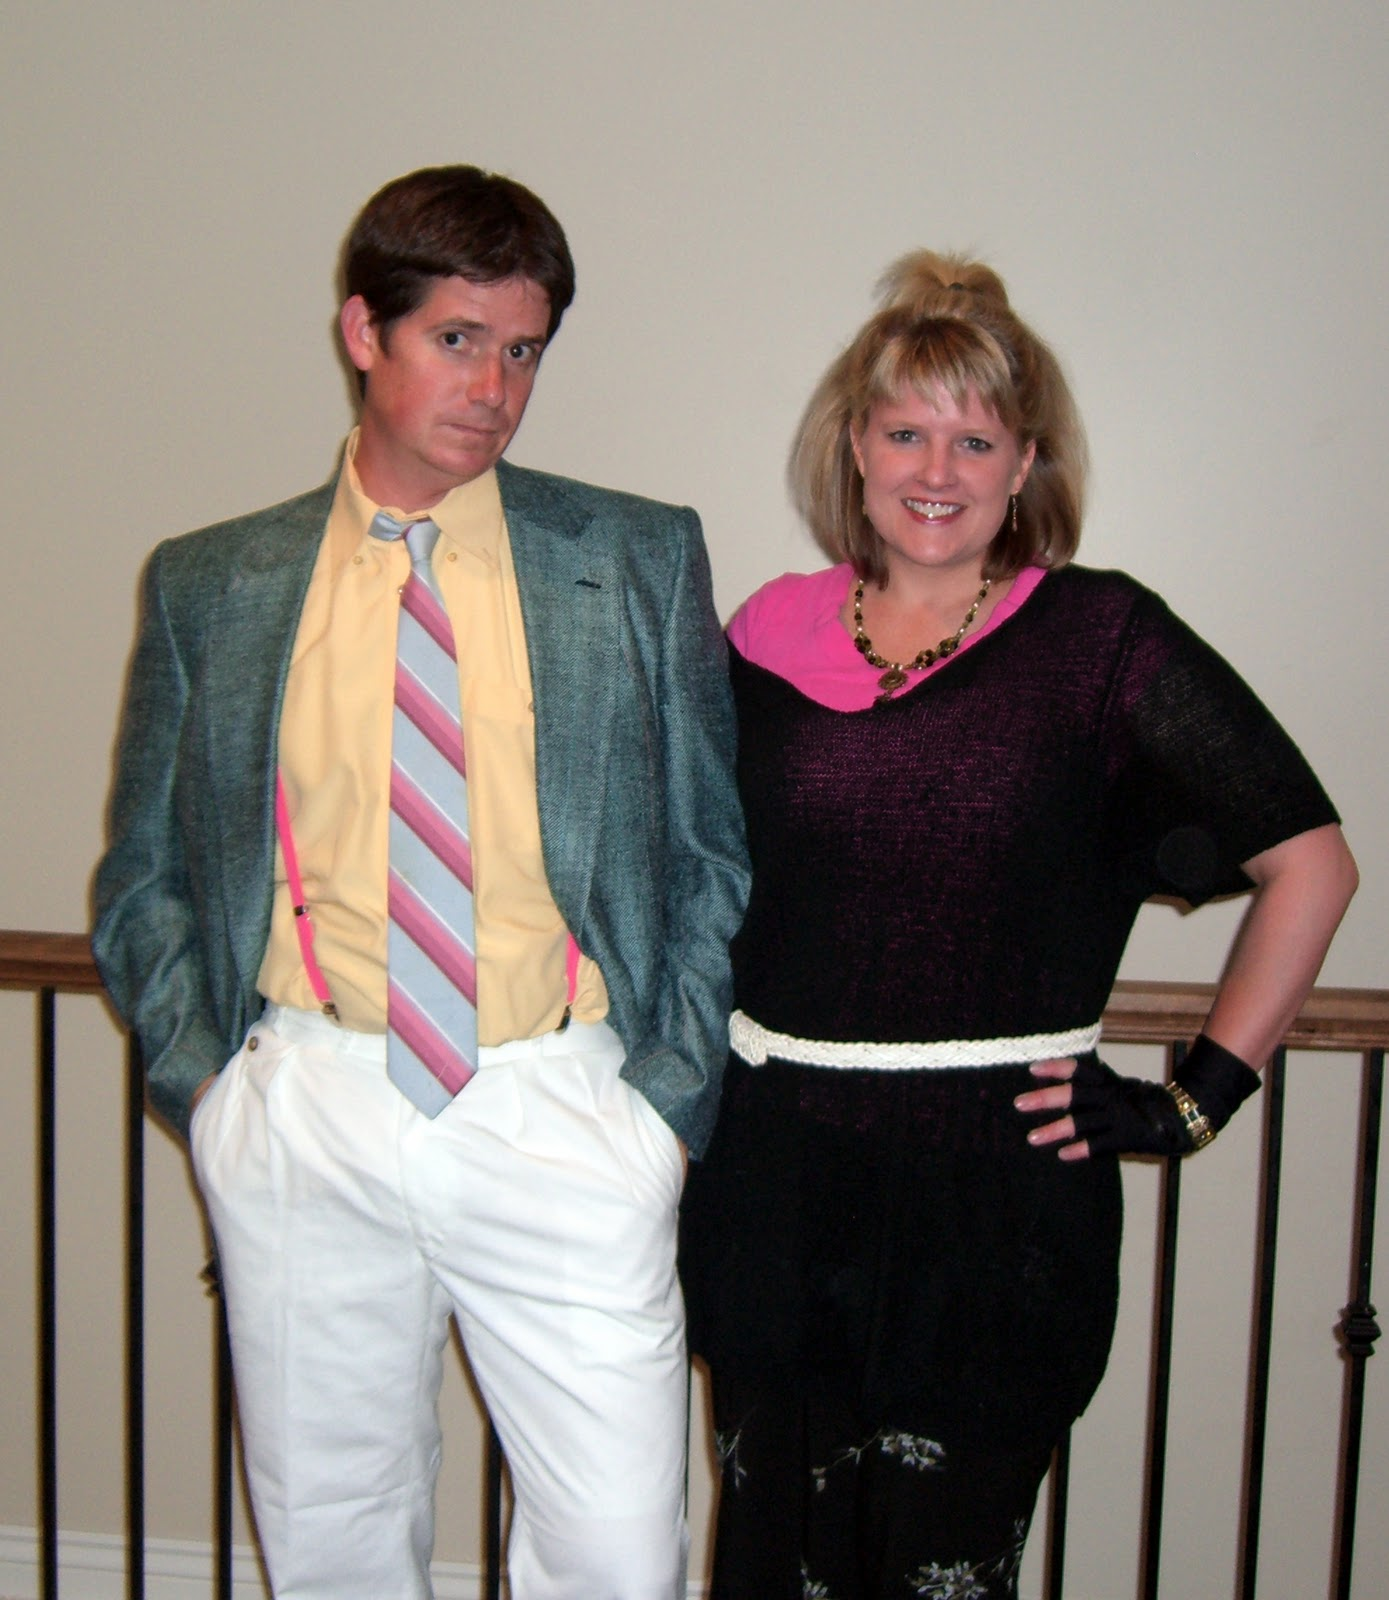 80s Prom Outfit For Guys